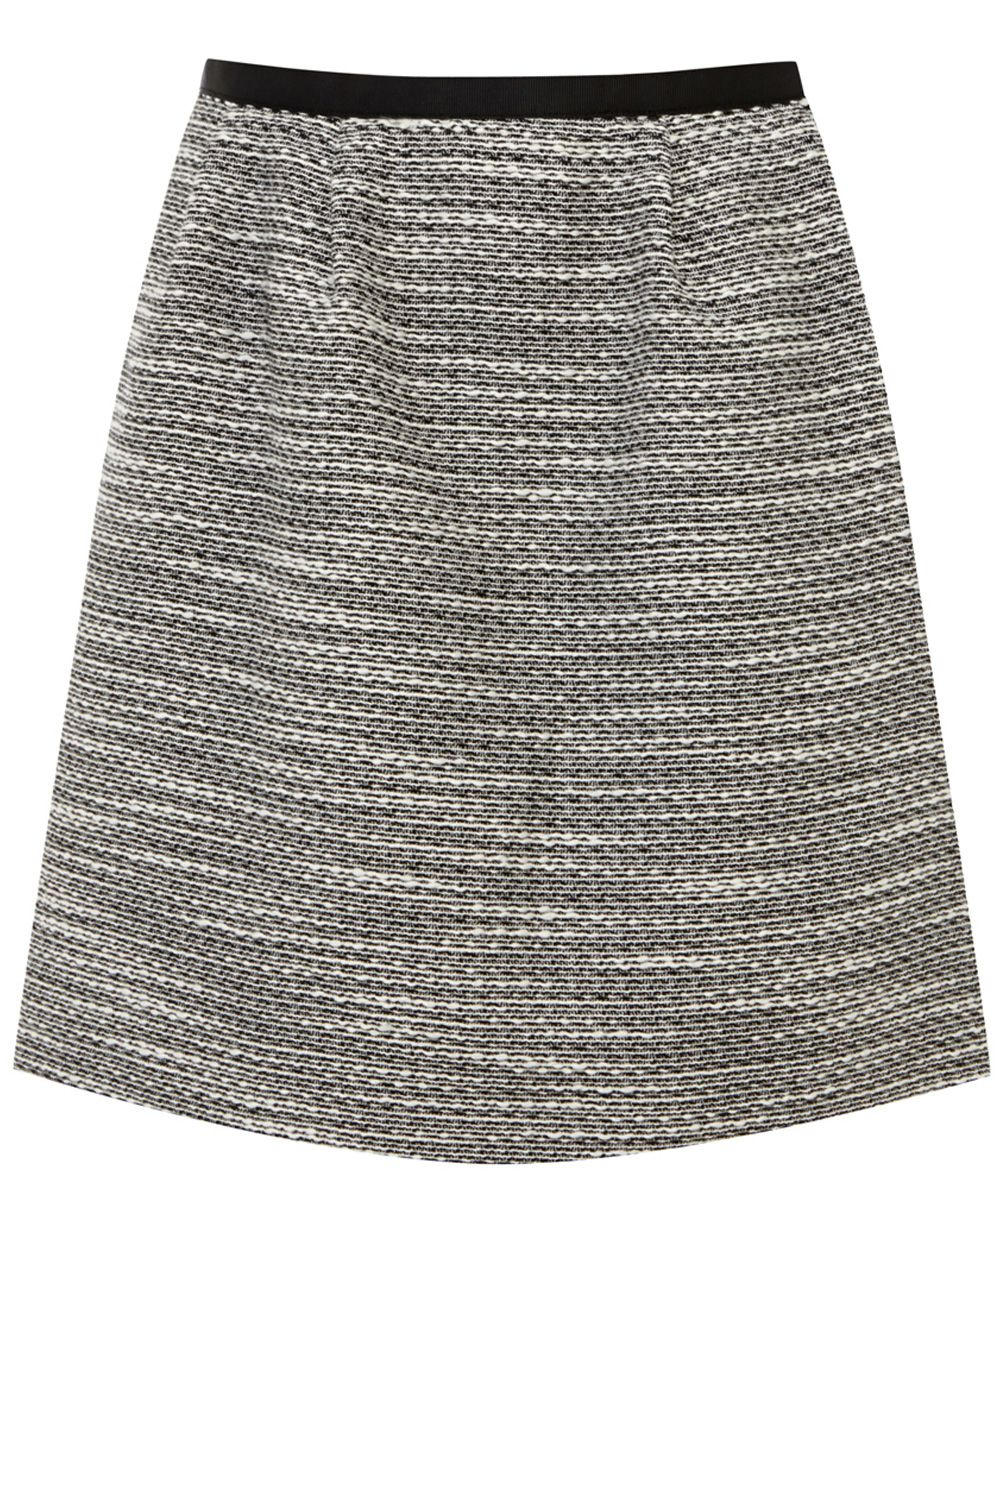 Salt and pepper texture skirt